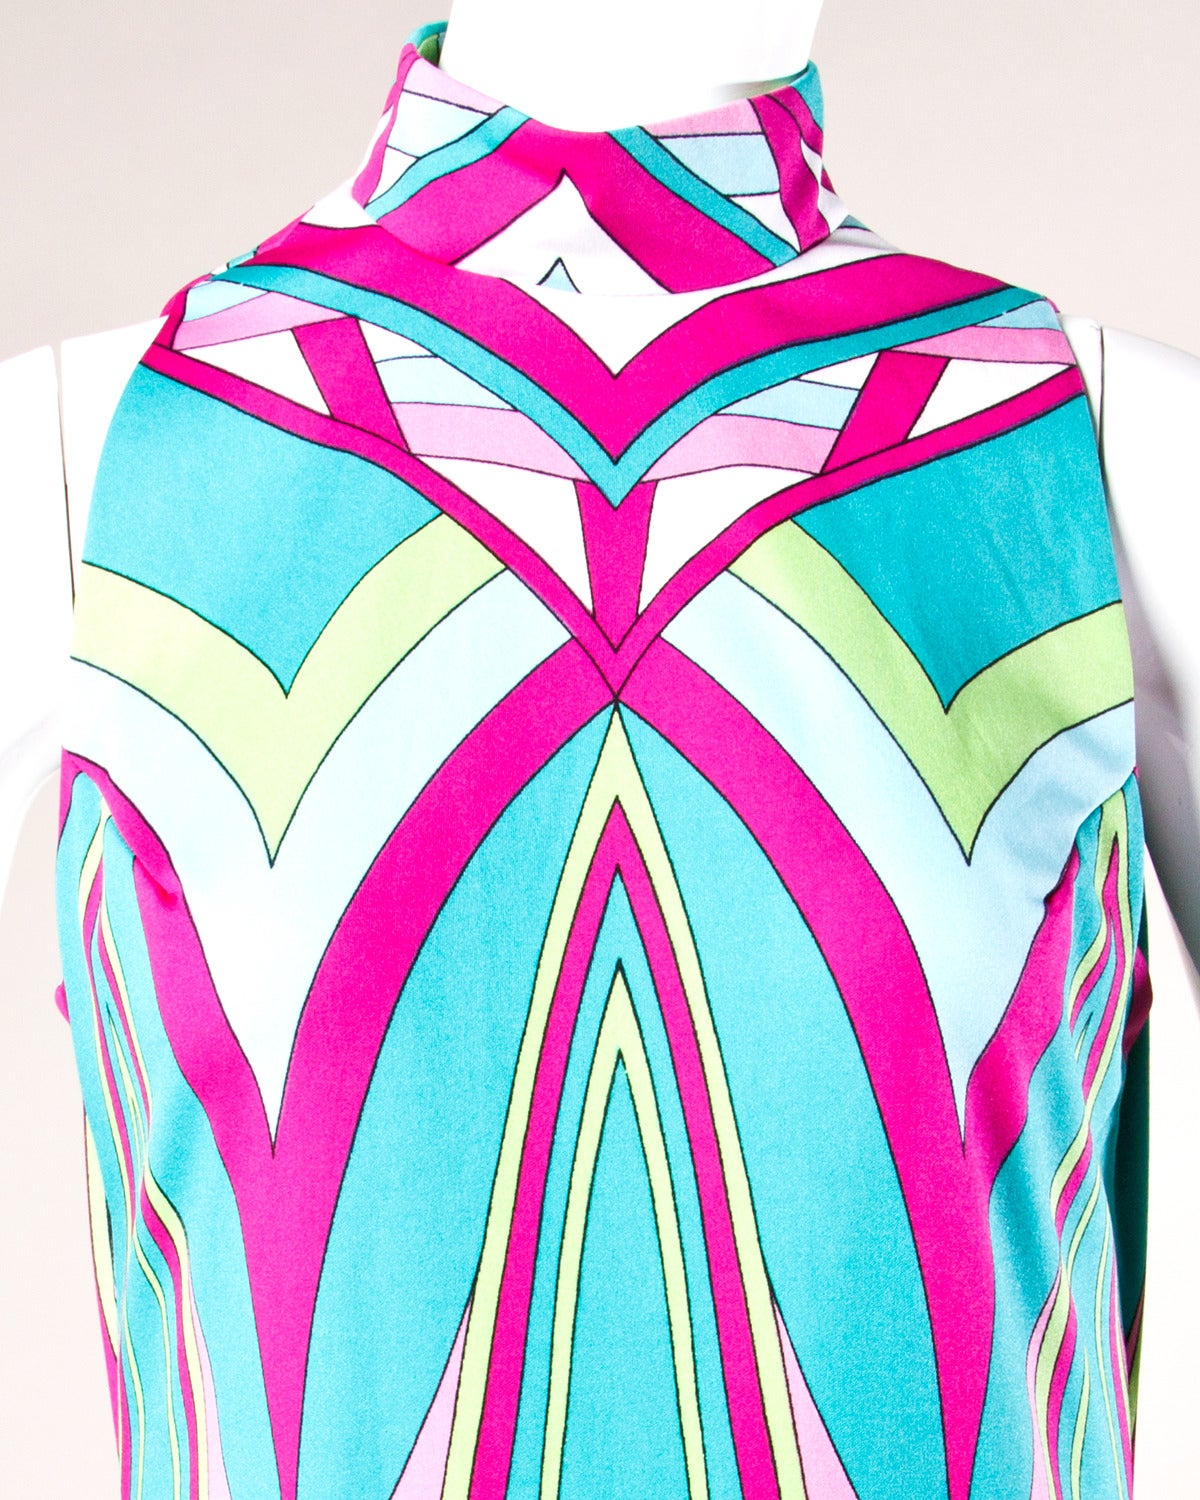 Amazing colorful op art maxi dress in light weight silky polyester by Cirette (a division of Paganne). Sleeveless sleeves and rear zip closure.  Details:  Unlined Rear Zip Closure Fabric: Light Weight Polyester Label: Cirette (A division of